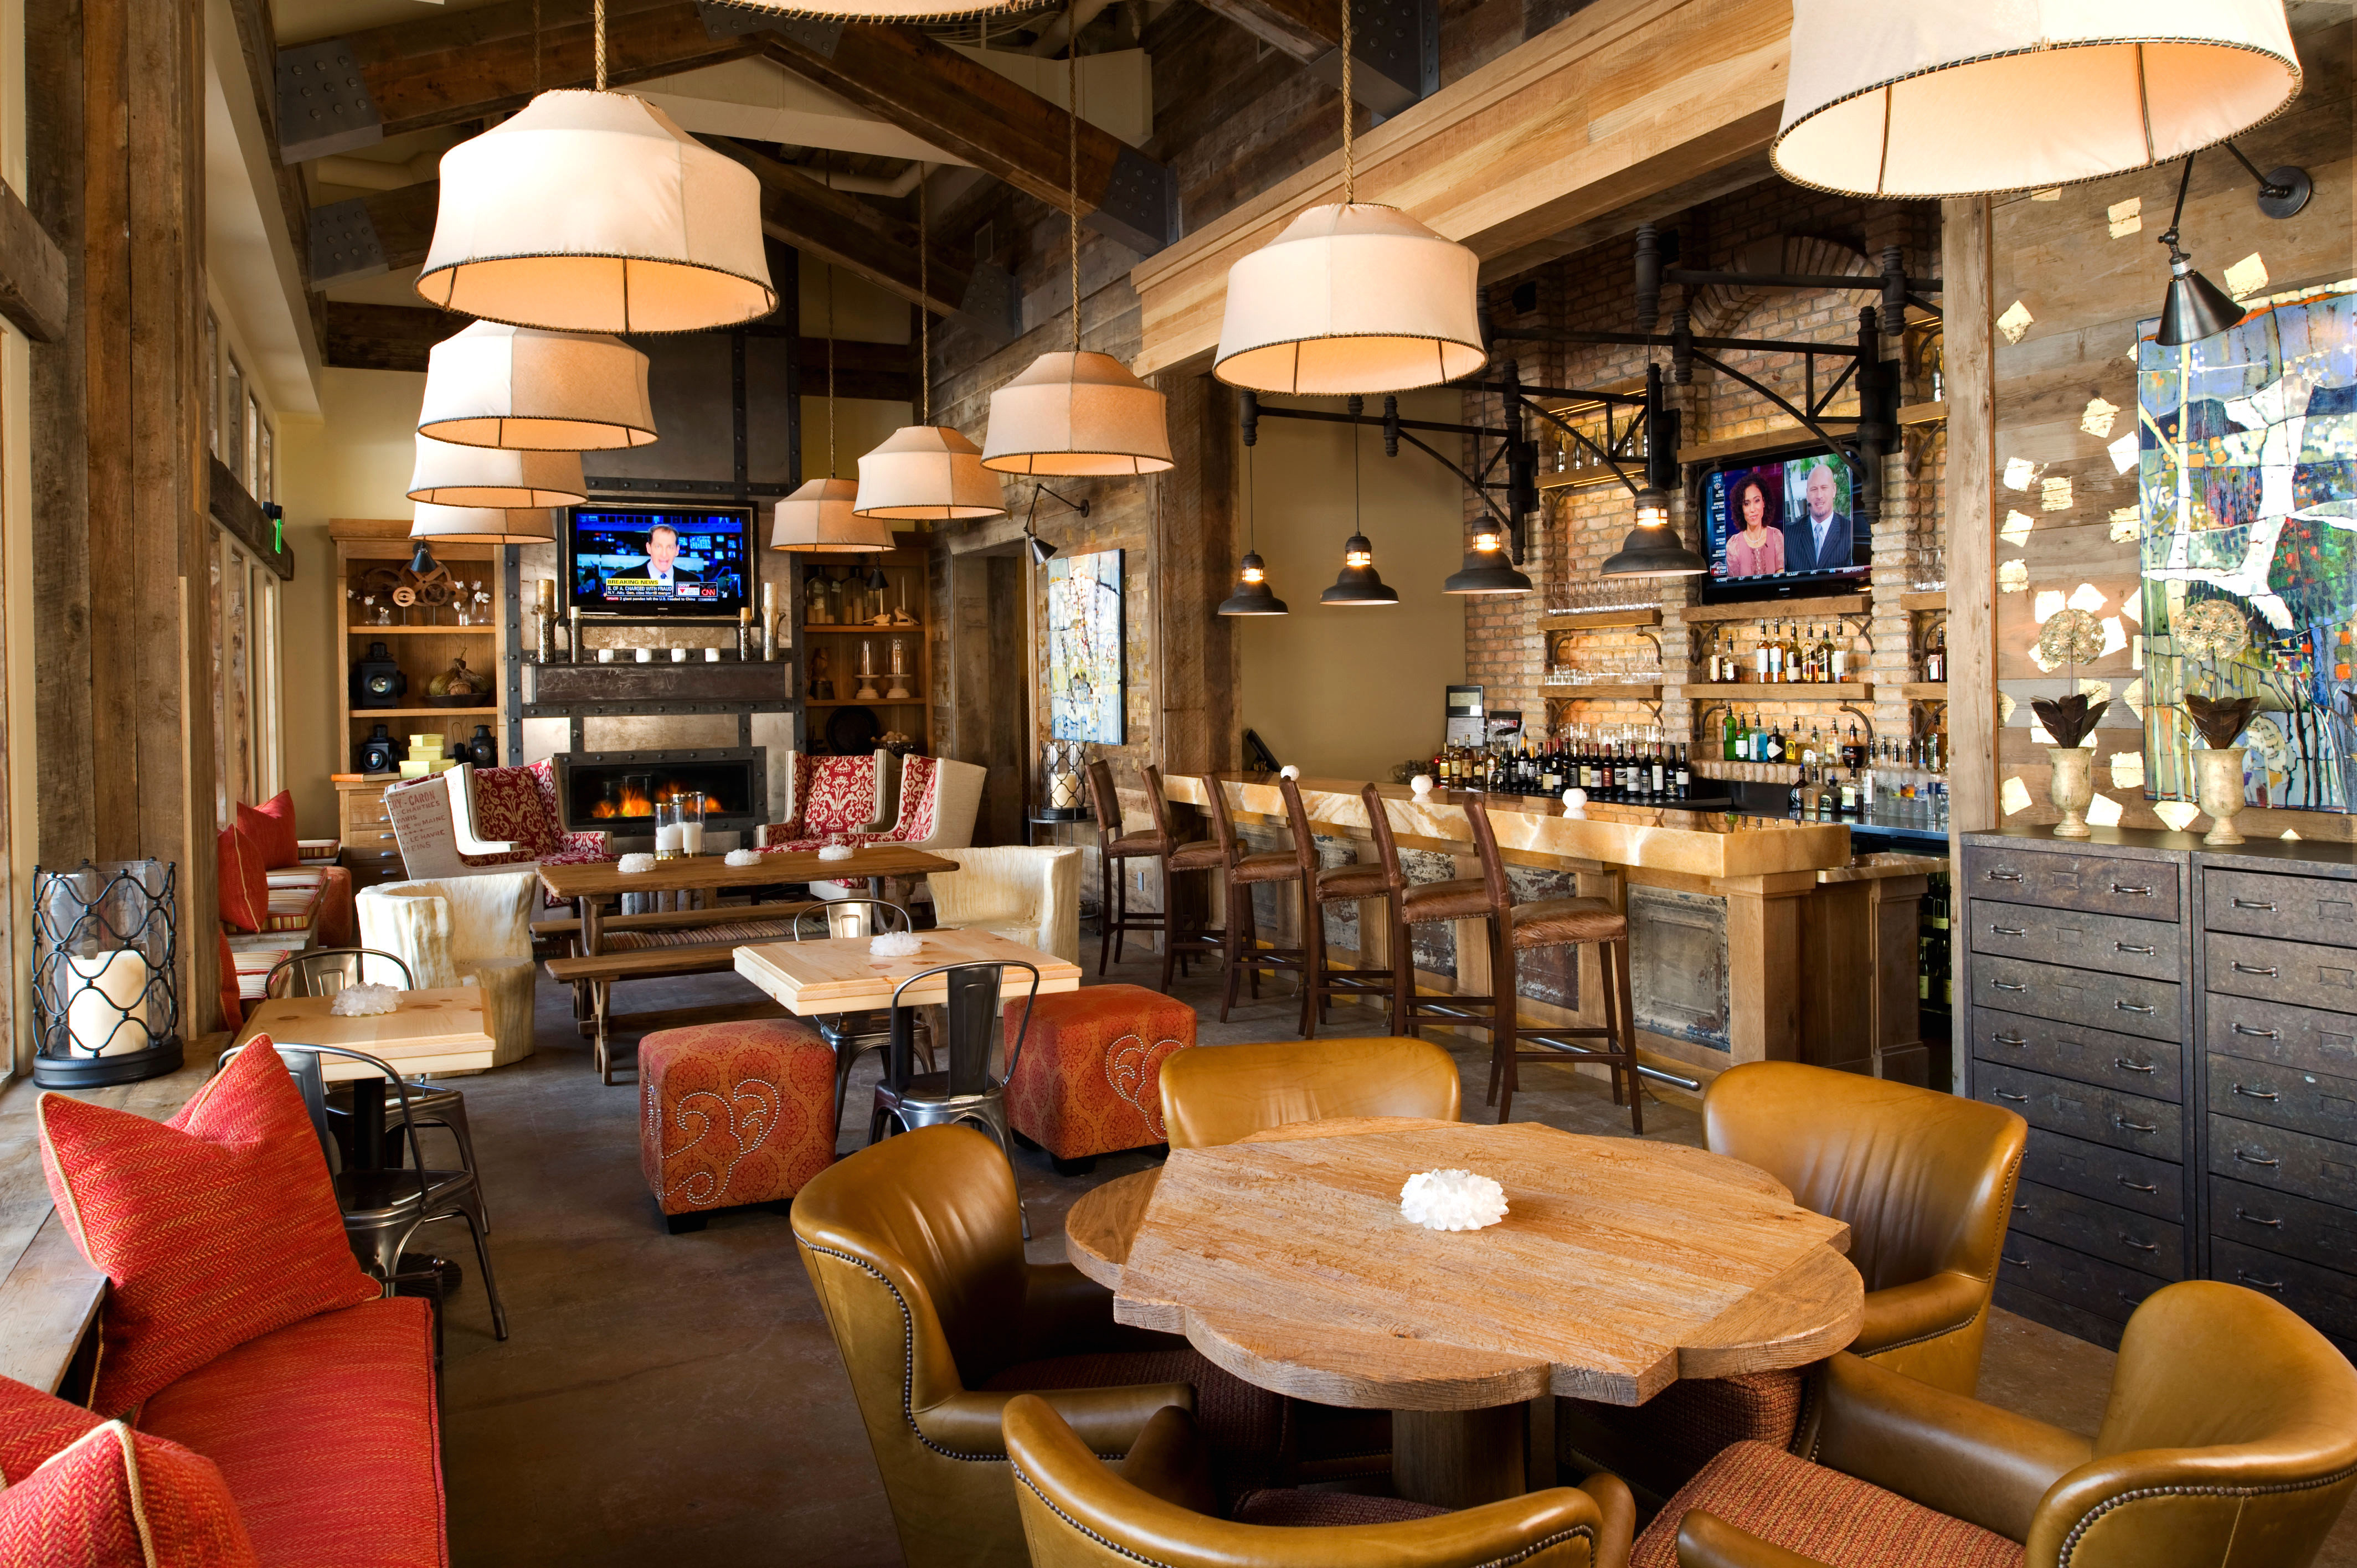 Country Dining Drink Eat Family Lodge Rustic restaurant Bar café Lobby Resort